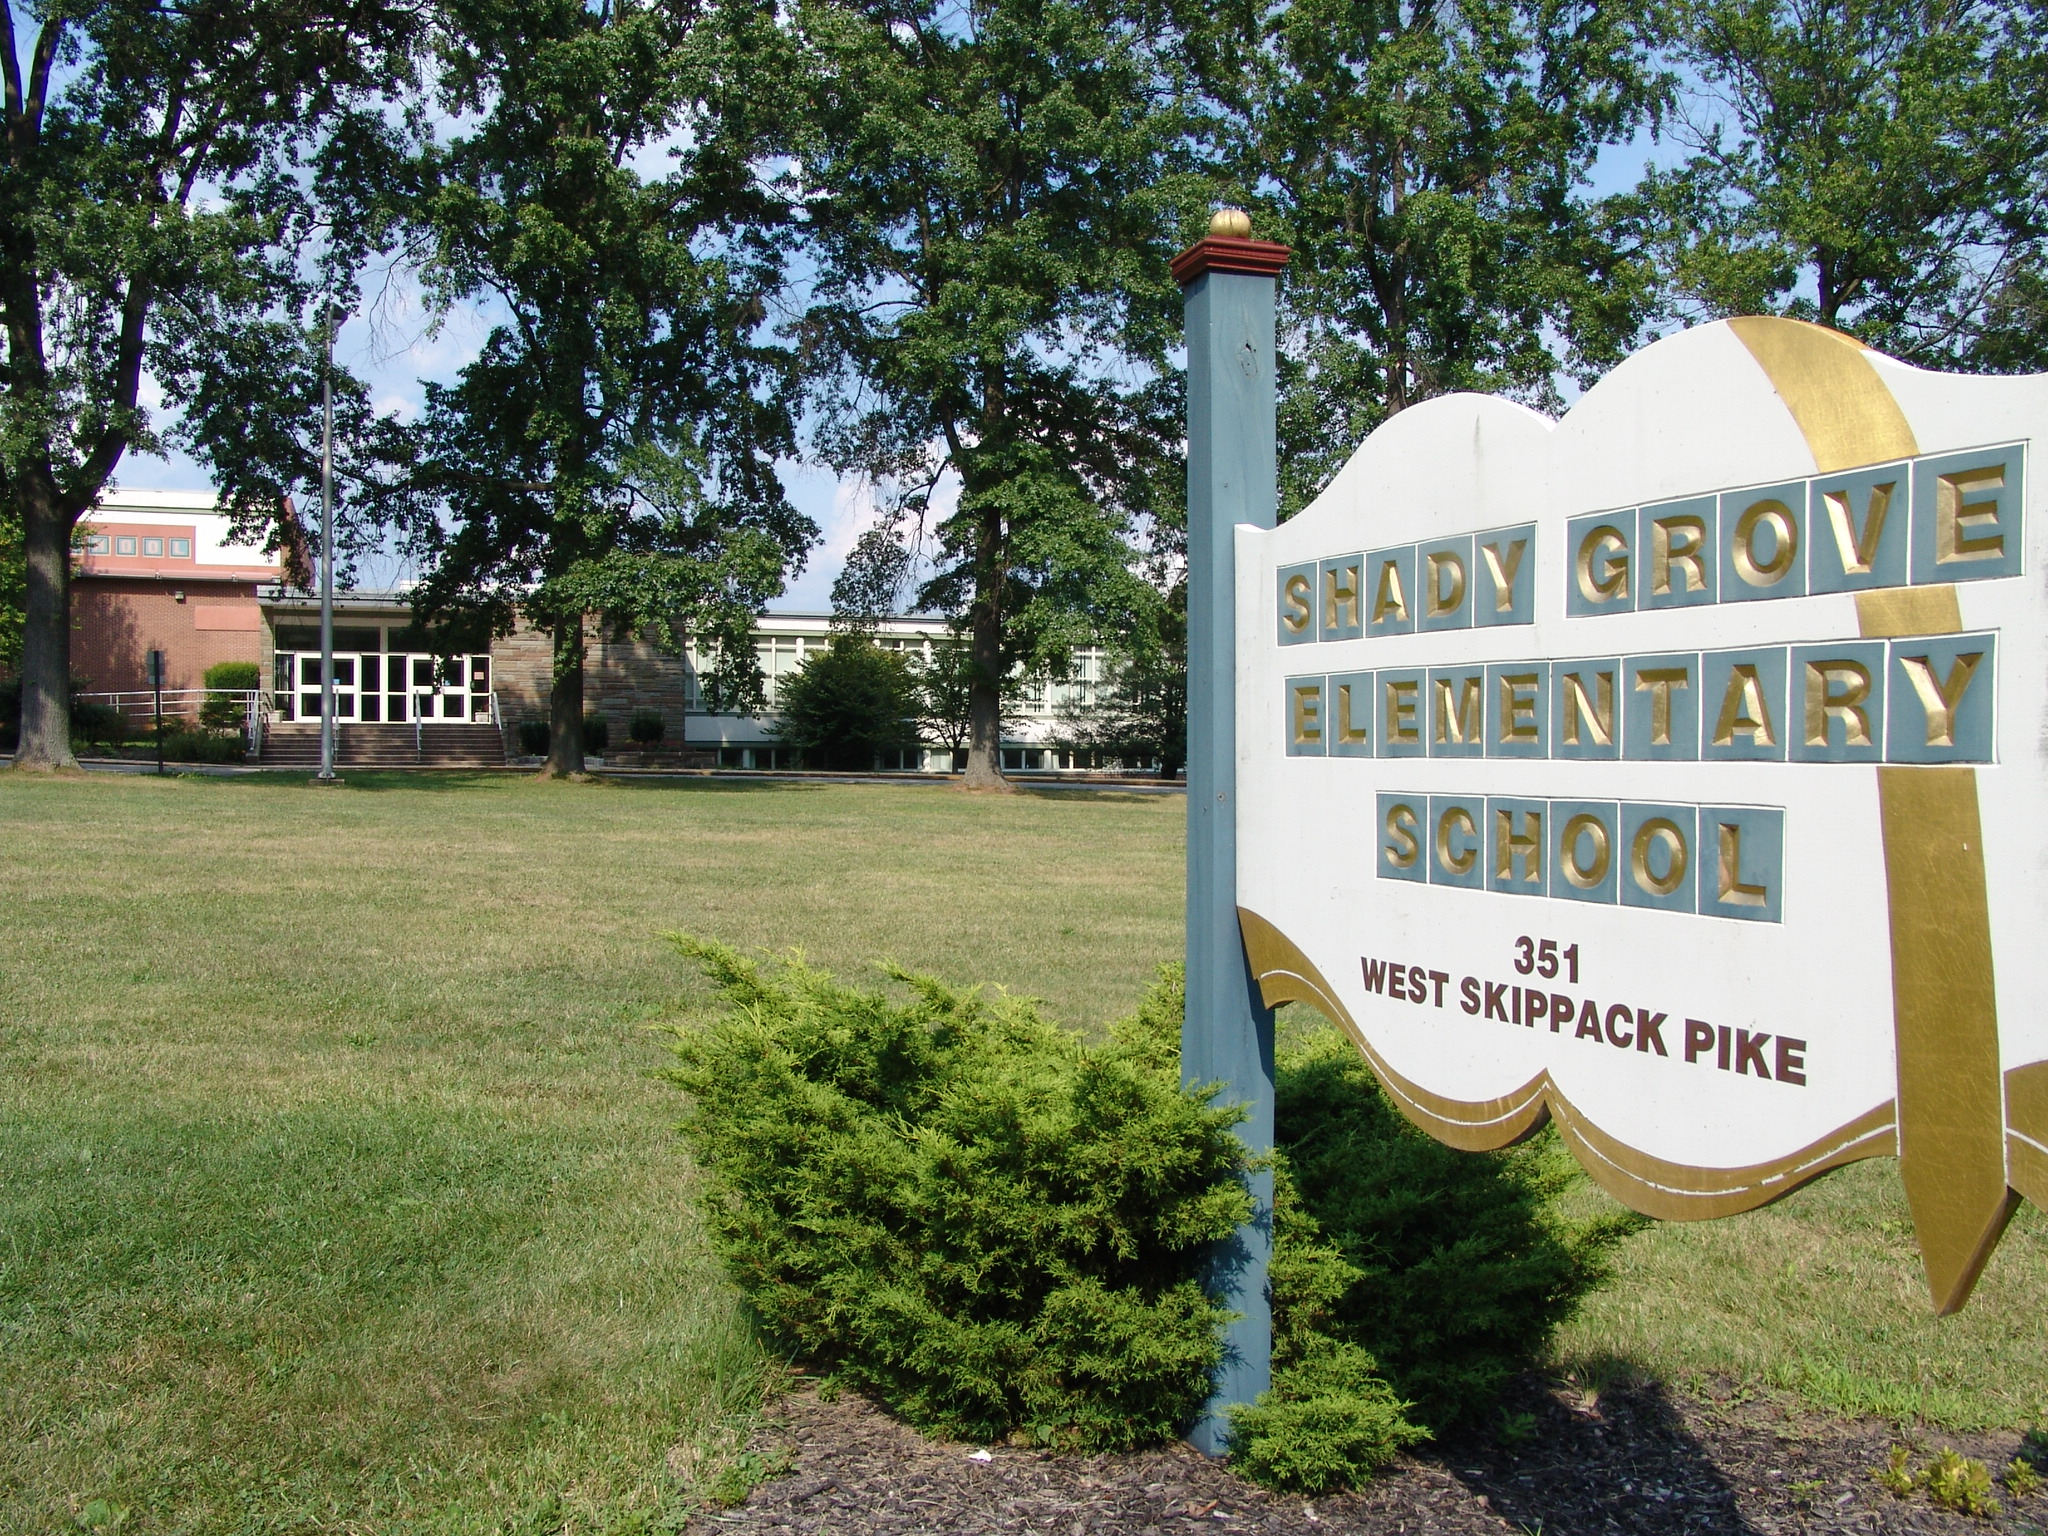 Shady Grove Elementary school building and signage